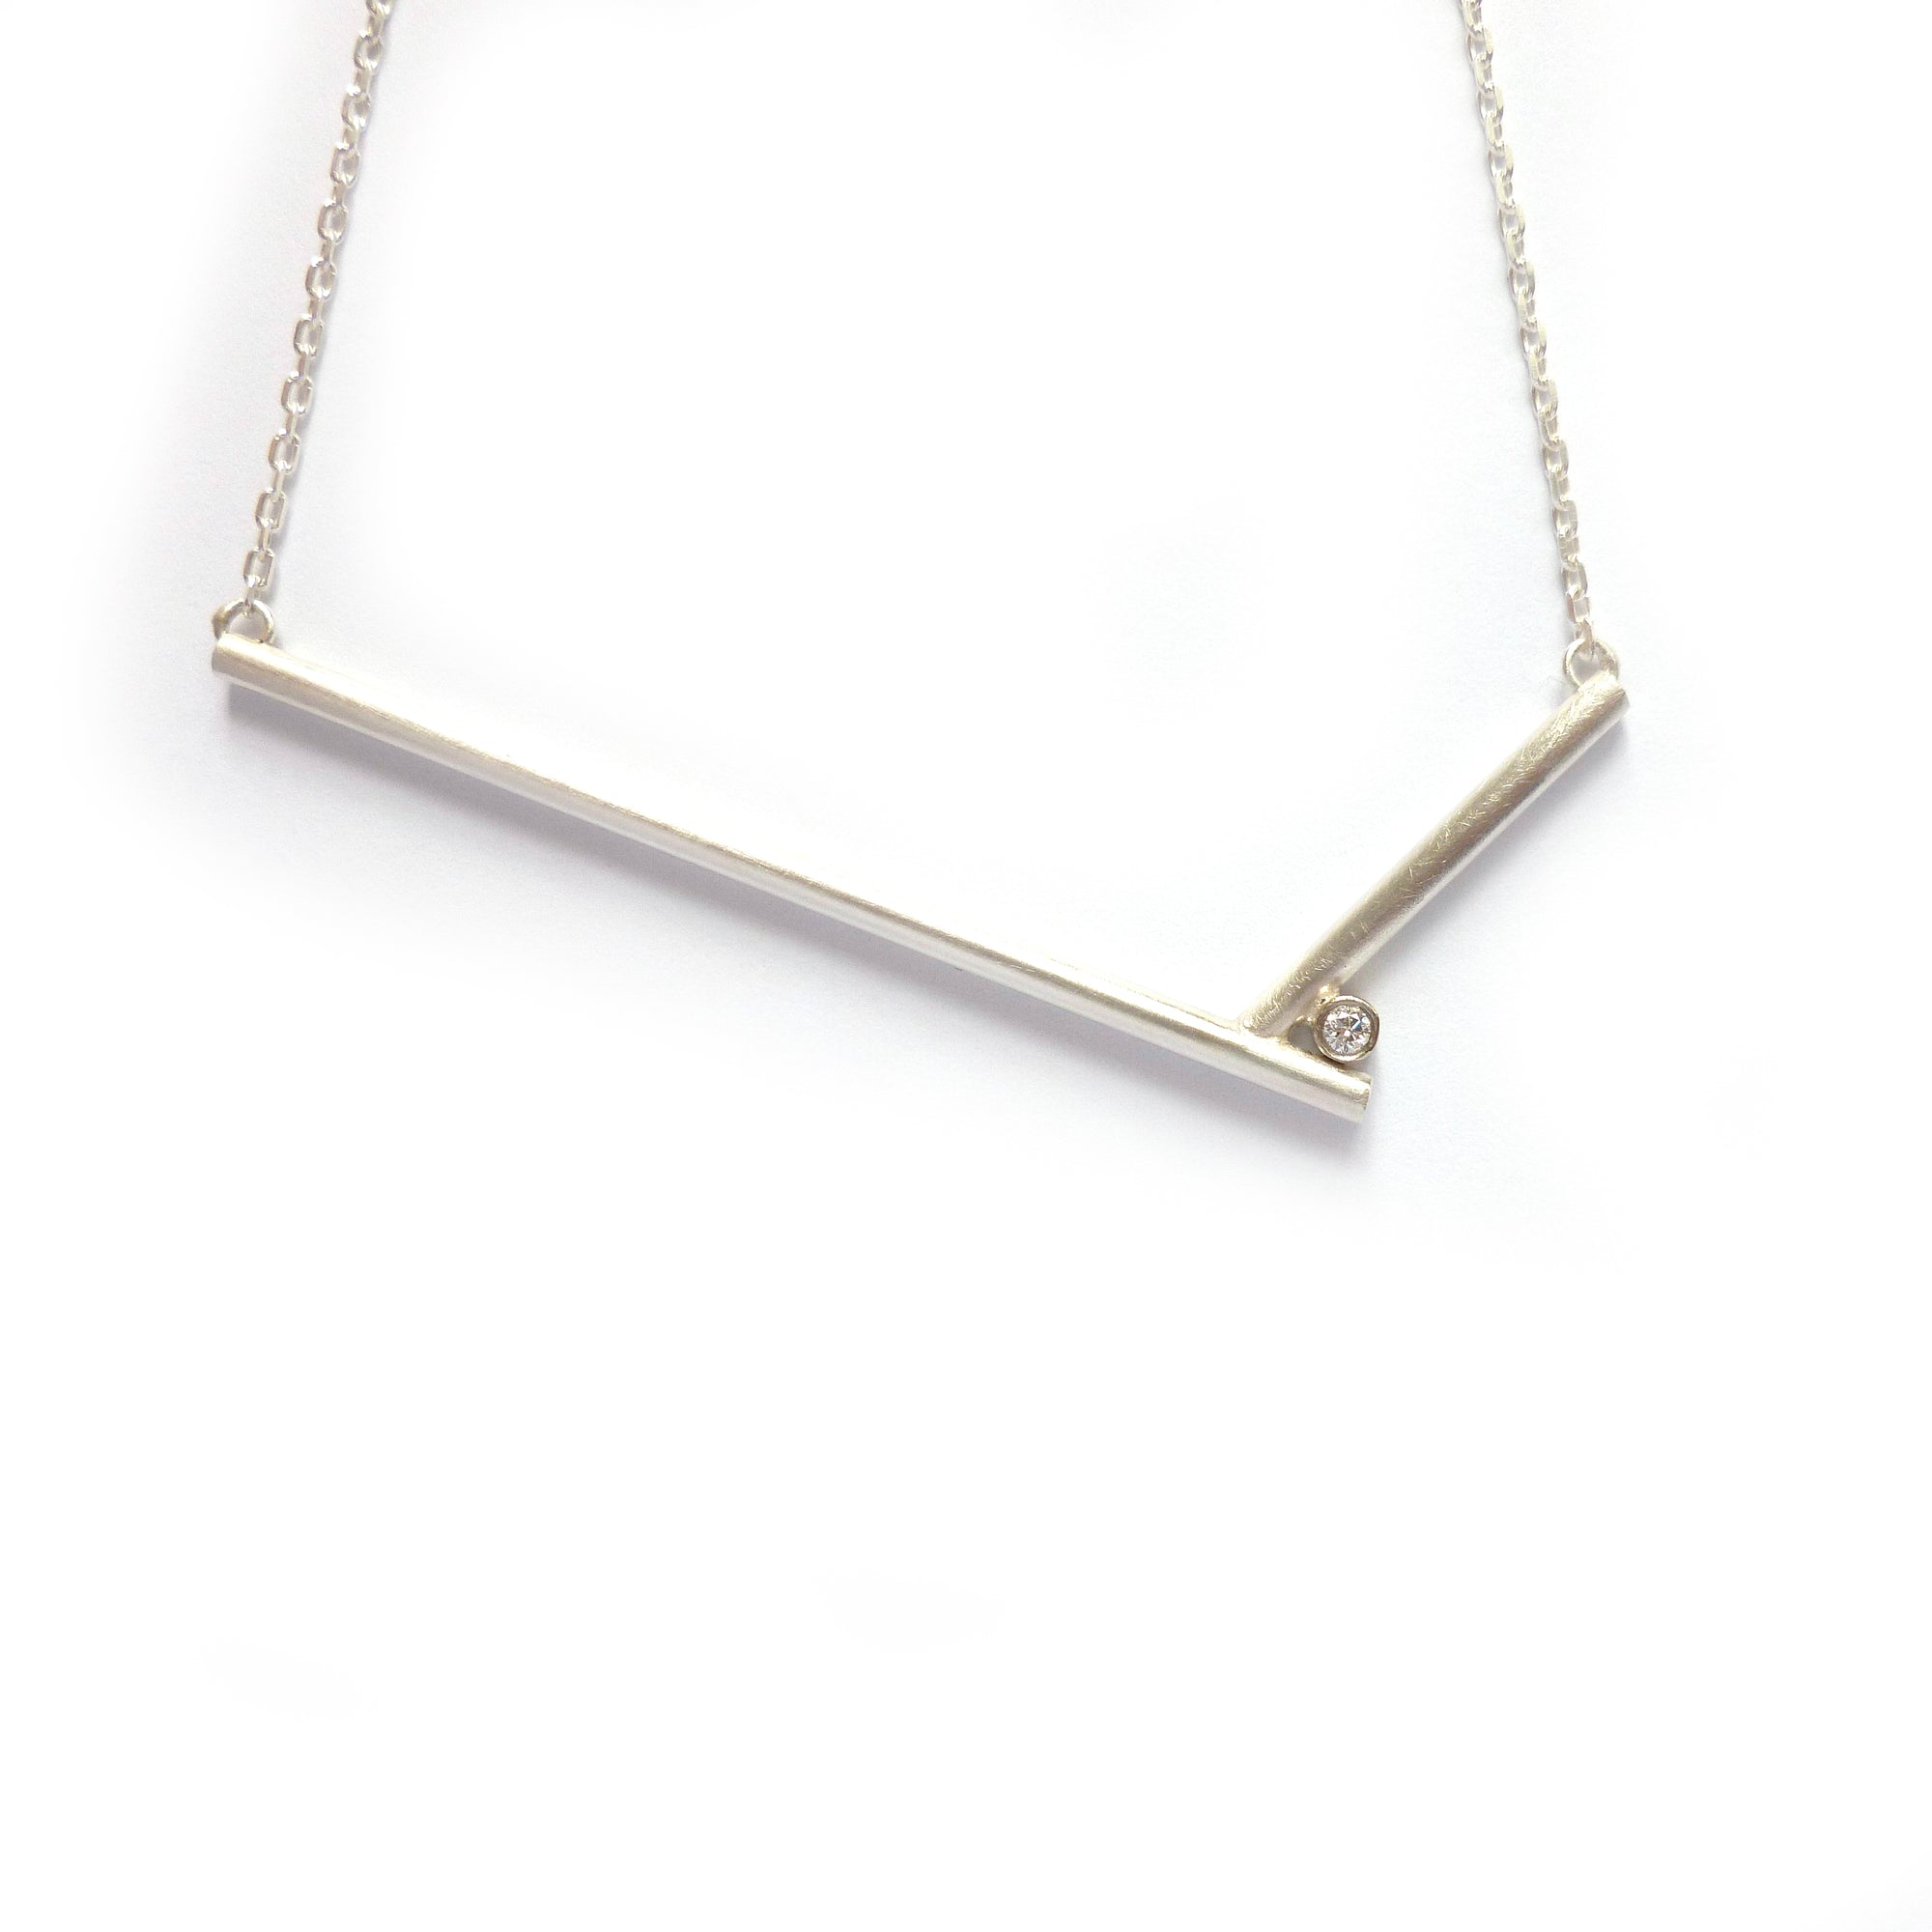 modern contemporary silver and diamond necklace handmade designer and maker by Sue Lane